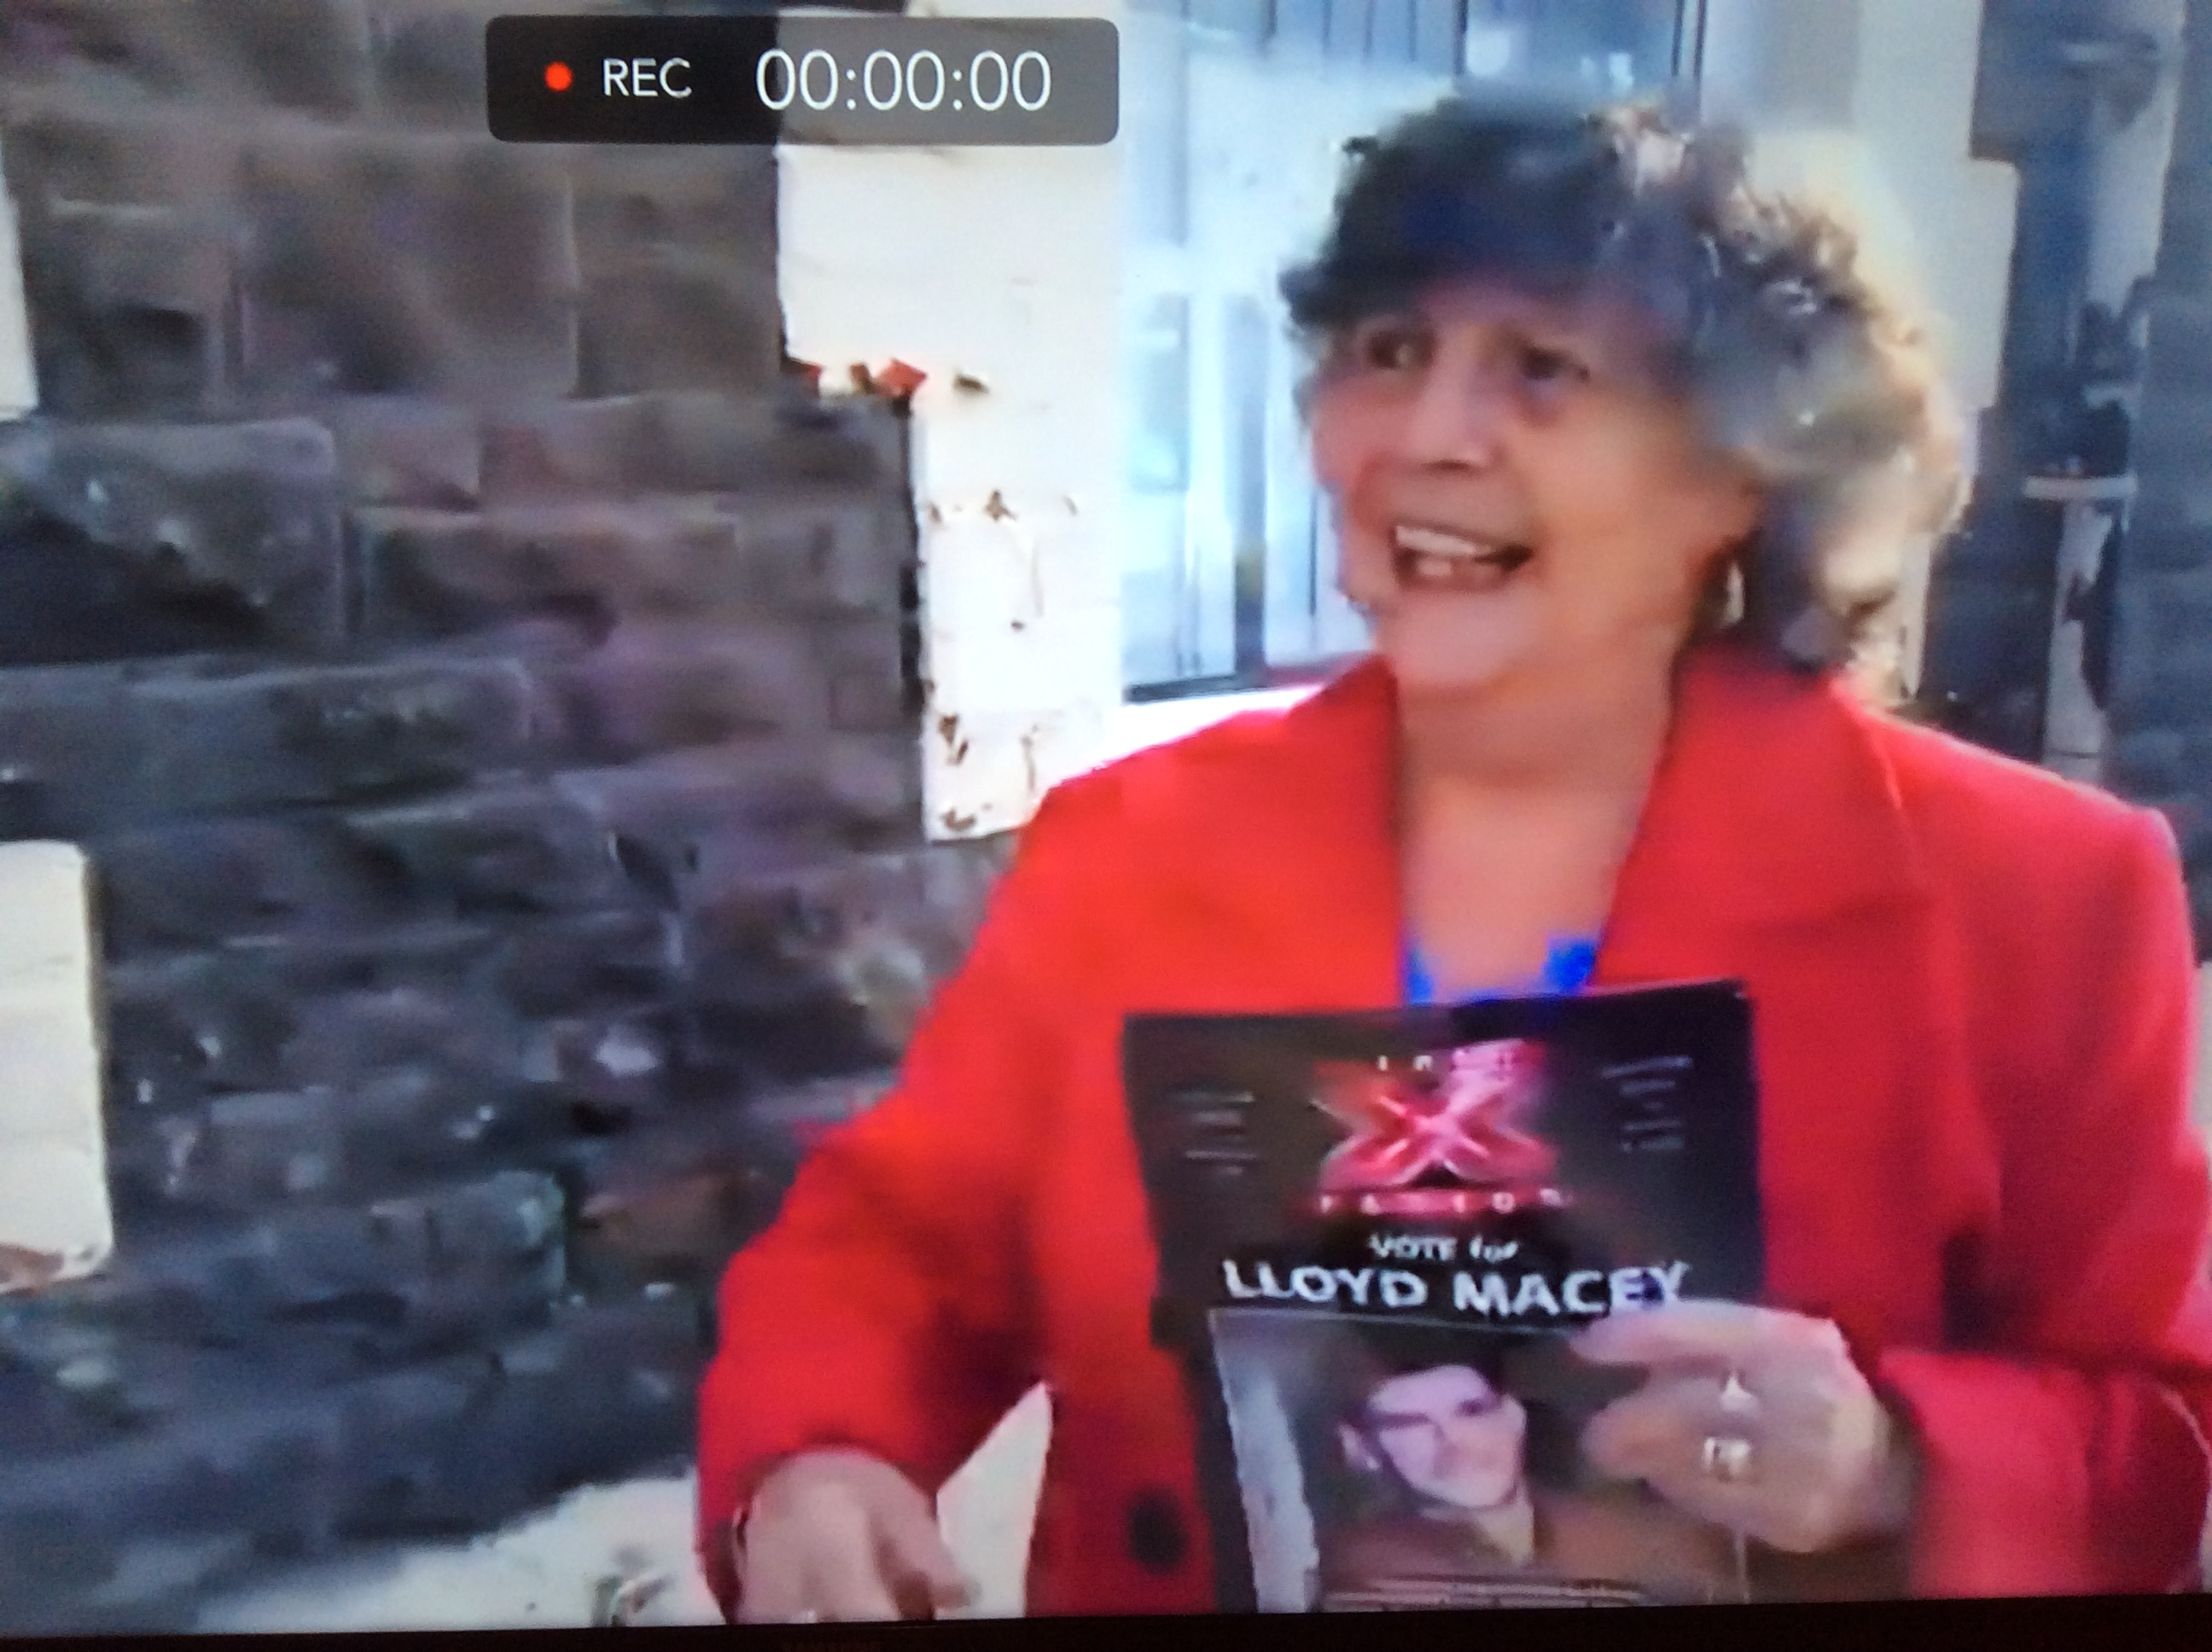 Lloyd Macey's nan on week 2 of The X Factor